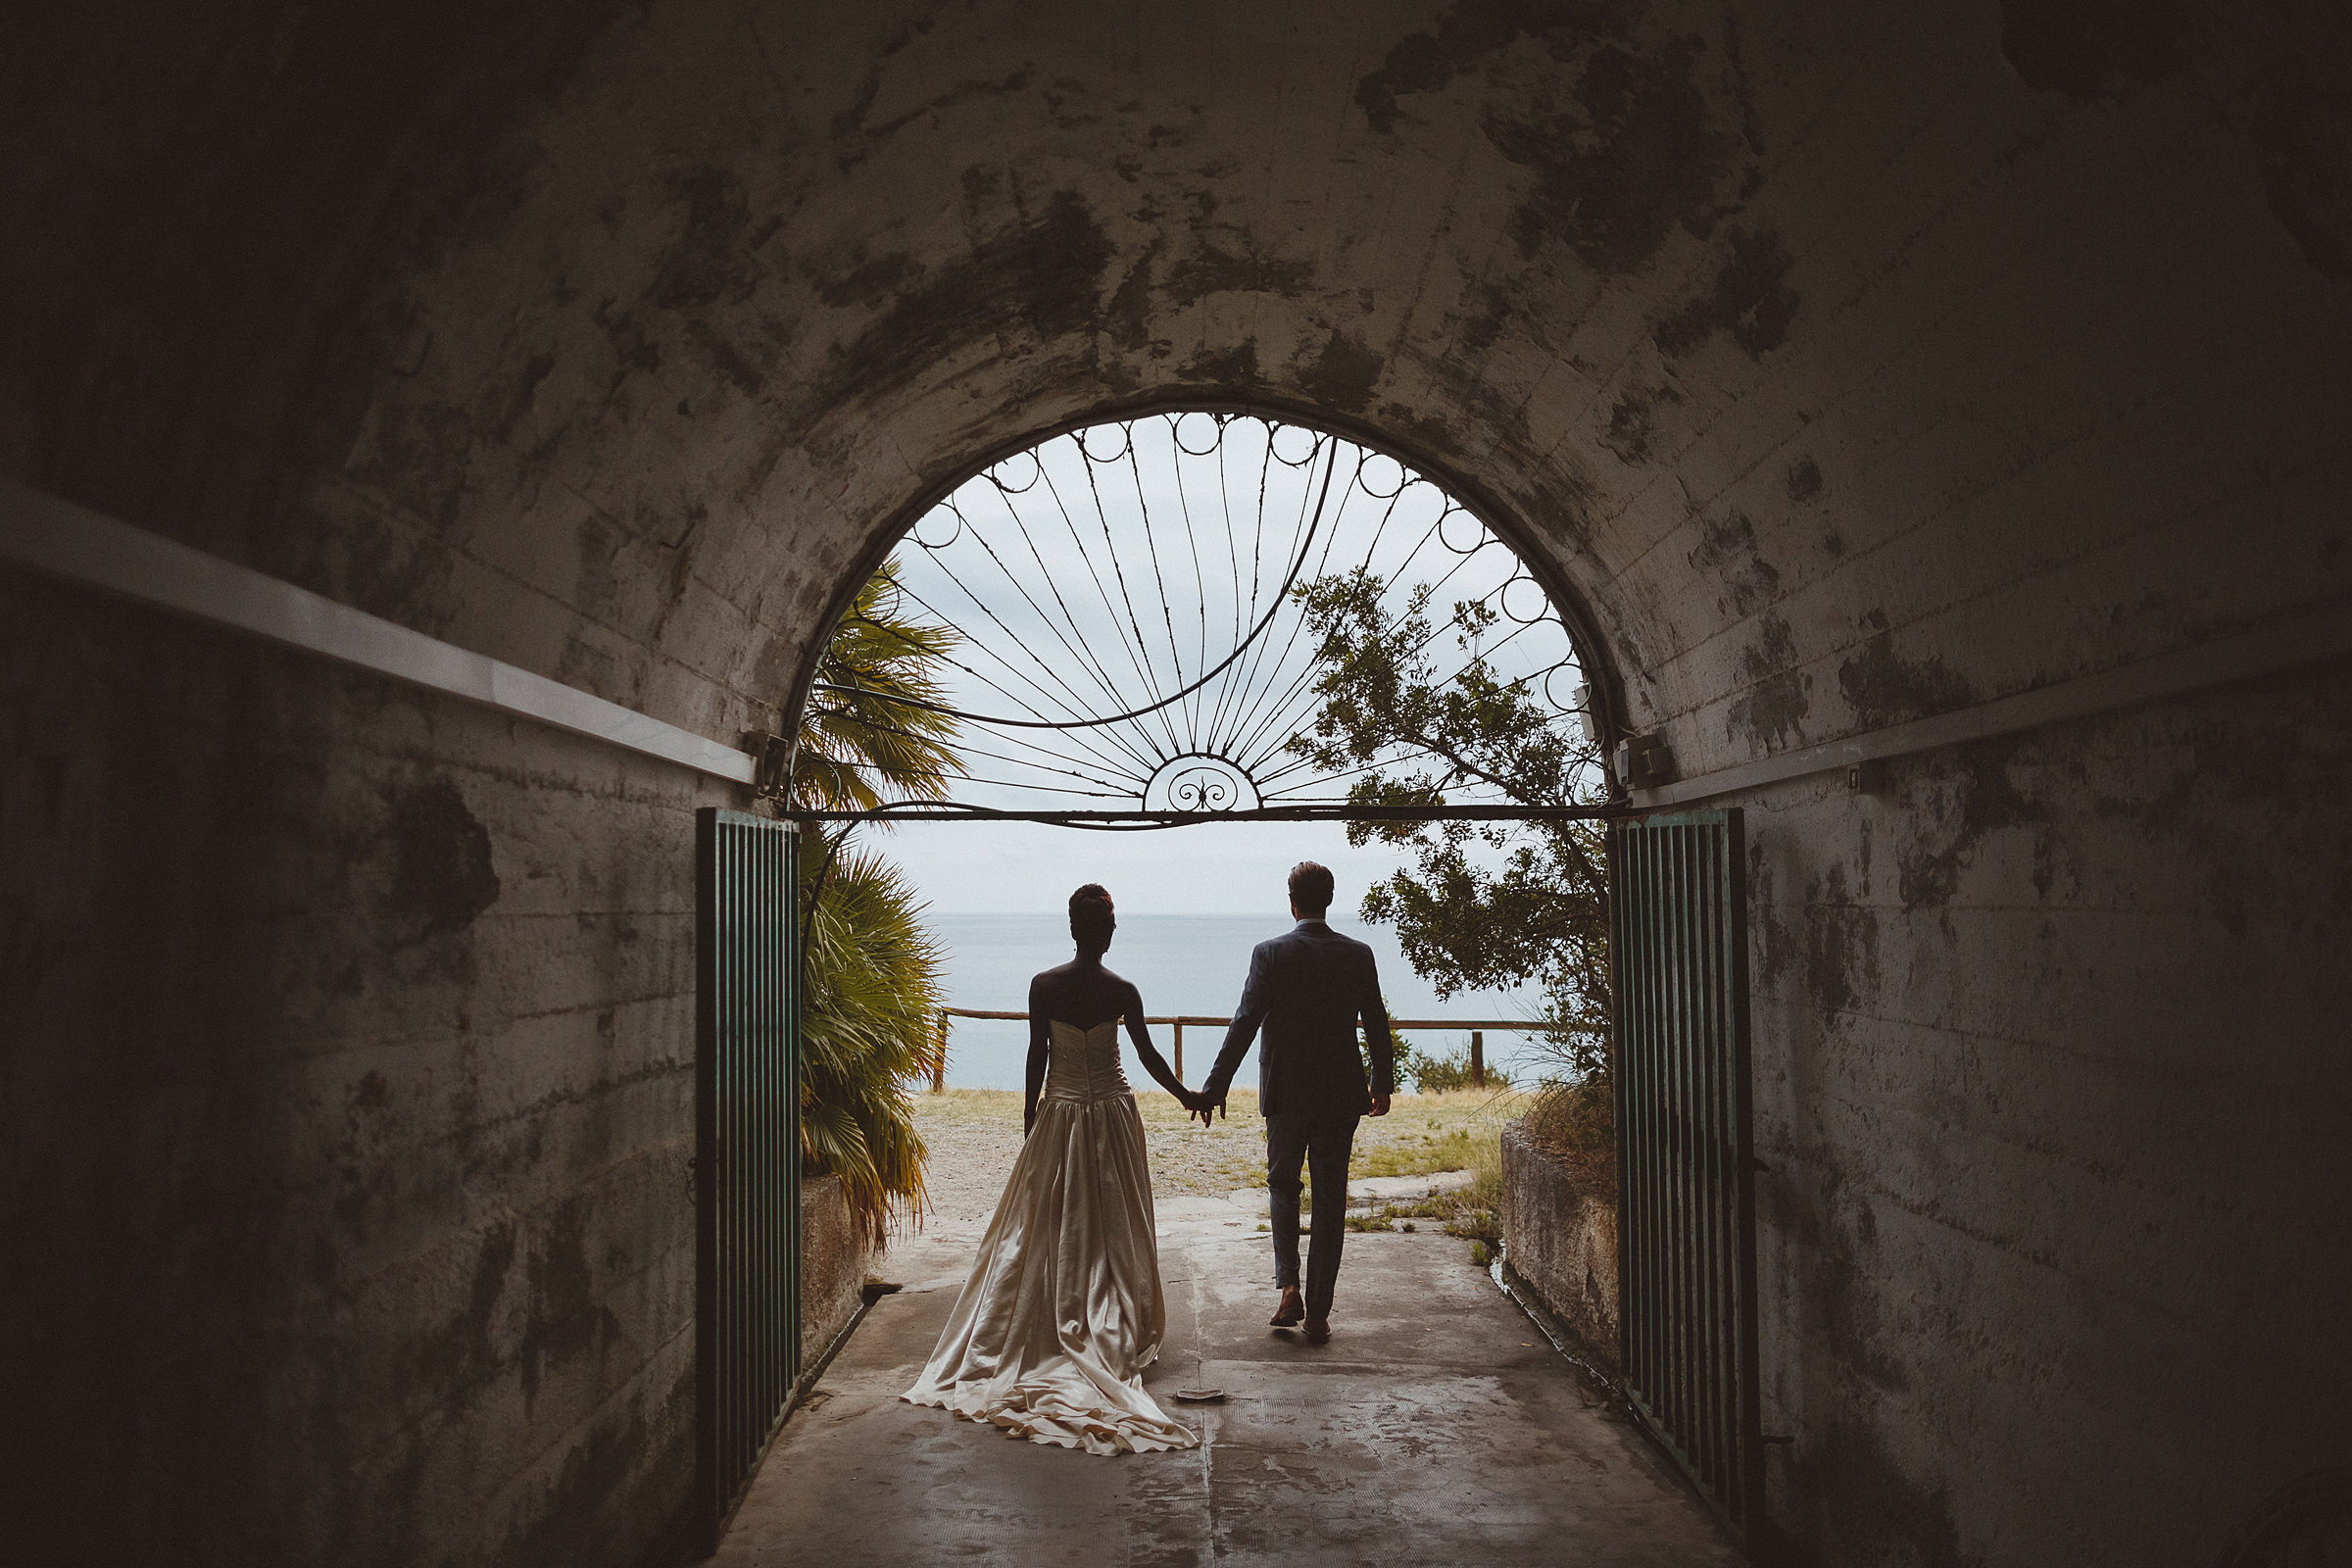 Couple silhouette looking outward from tunnel with ornate grille - photo by Ed Peers Photography